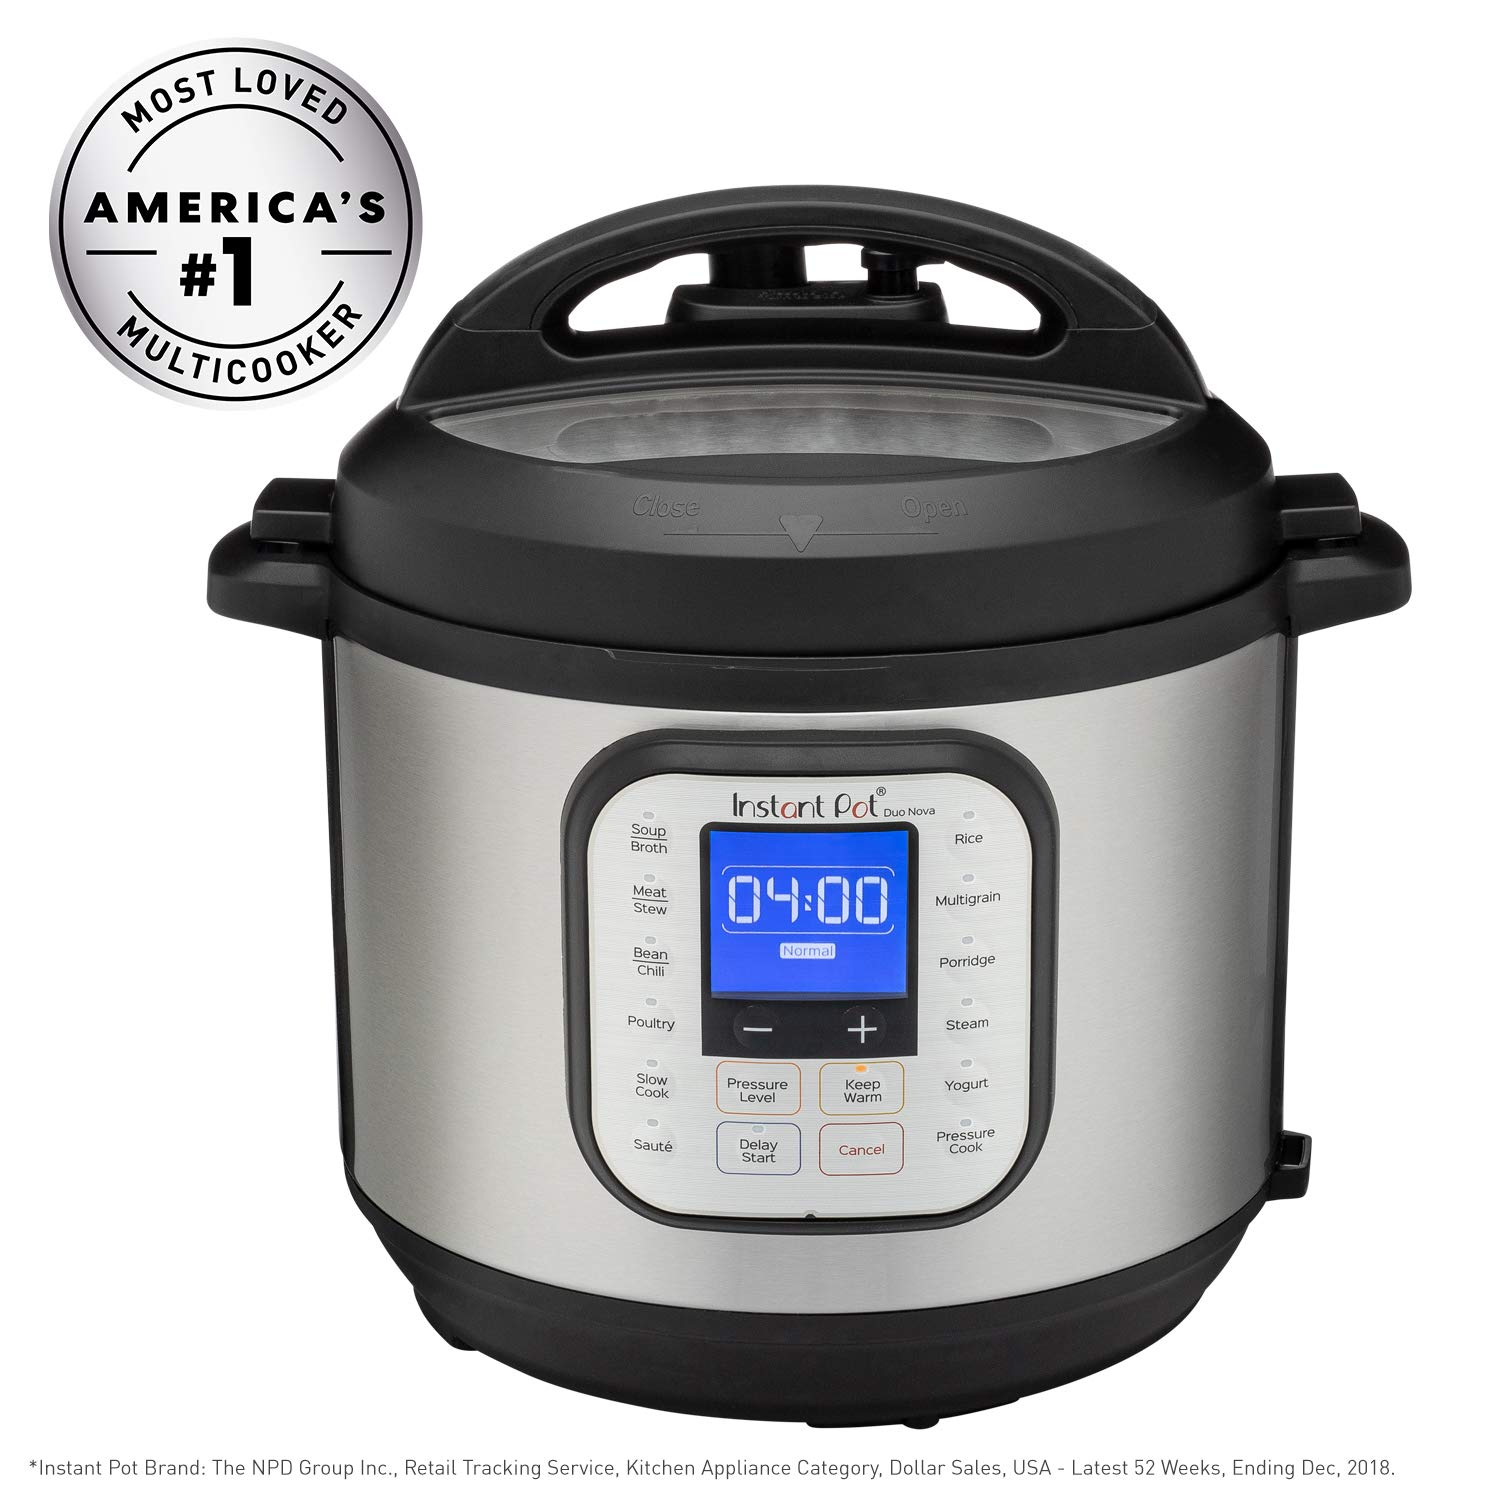 The instant pot is a time-saving product you need in the kitchen